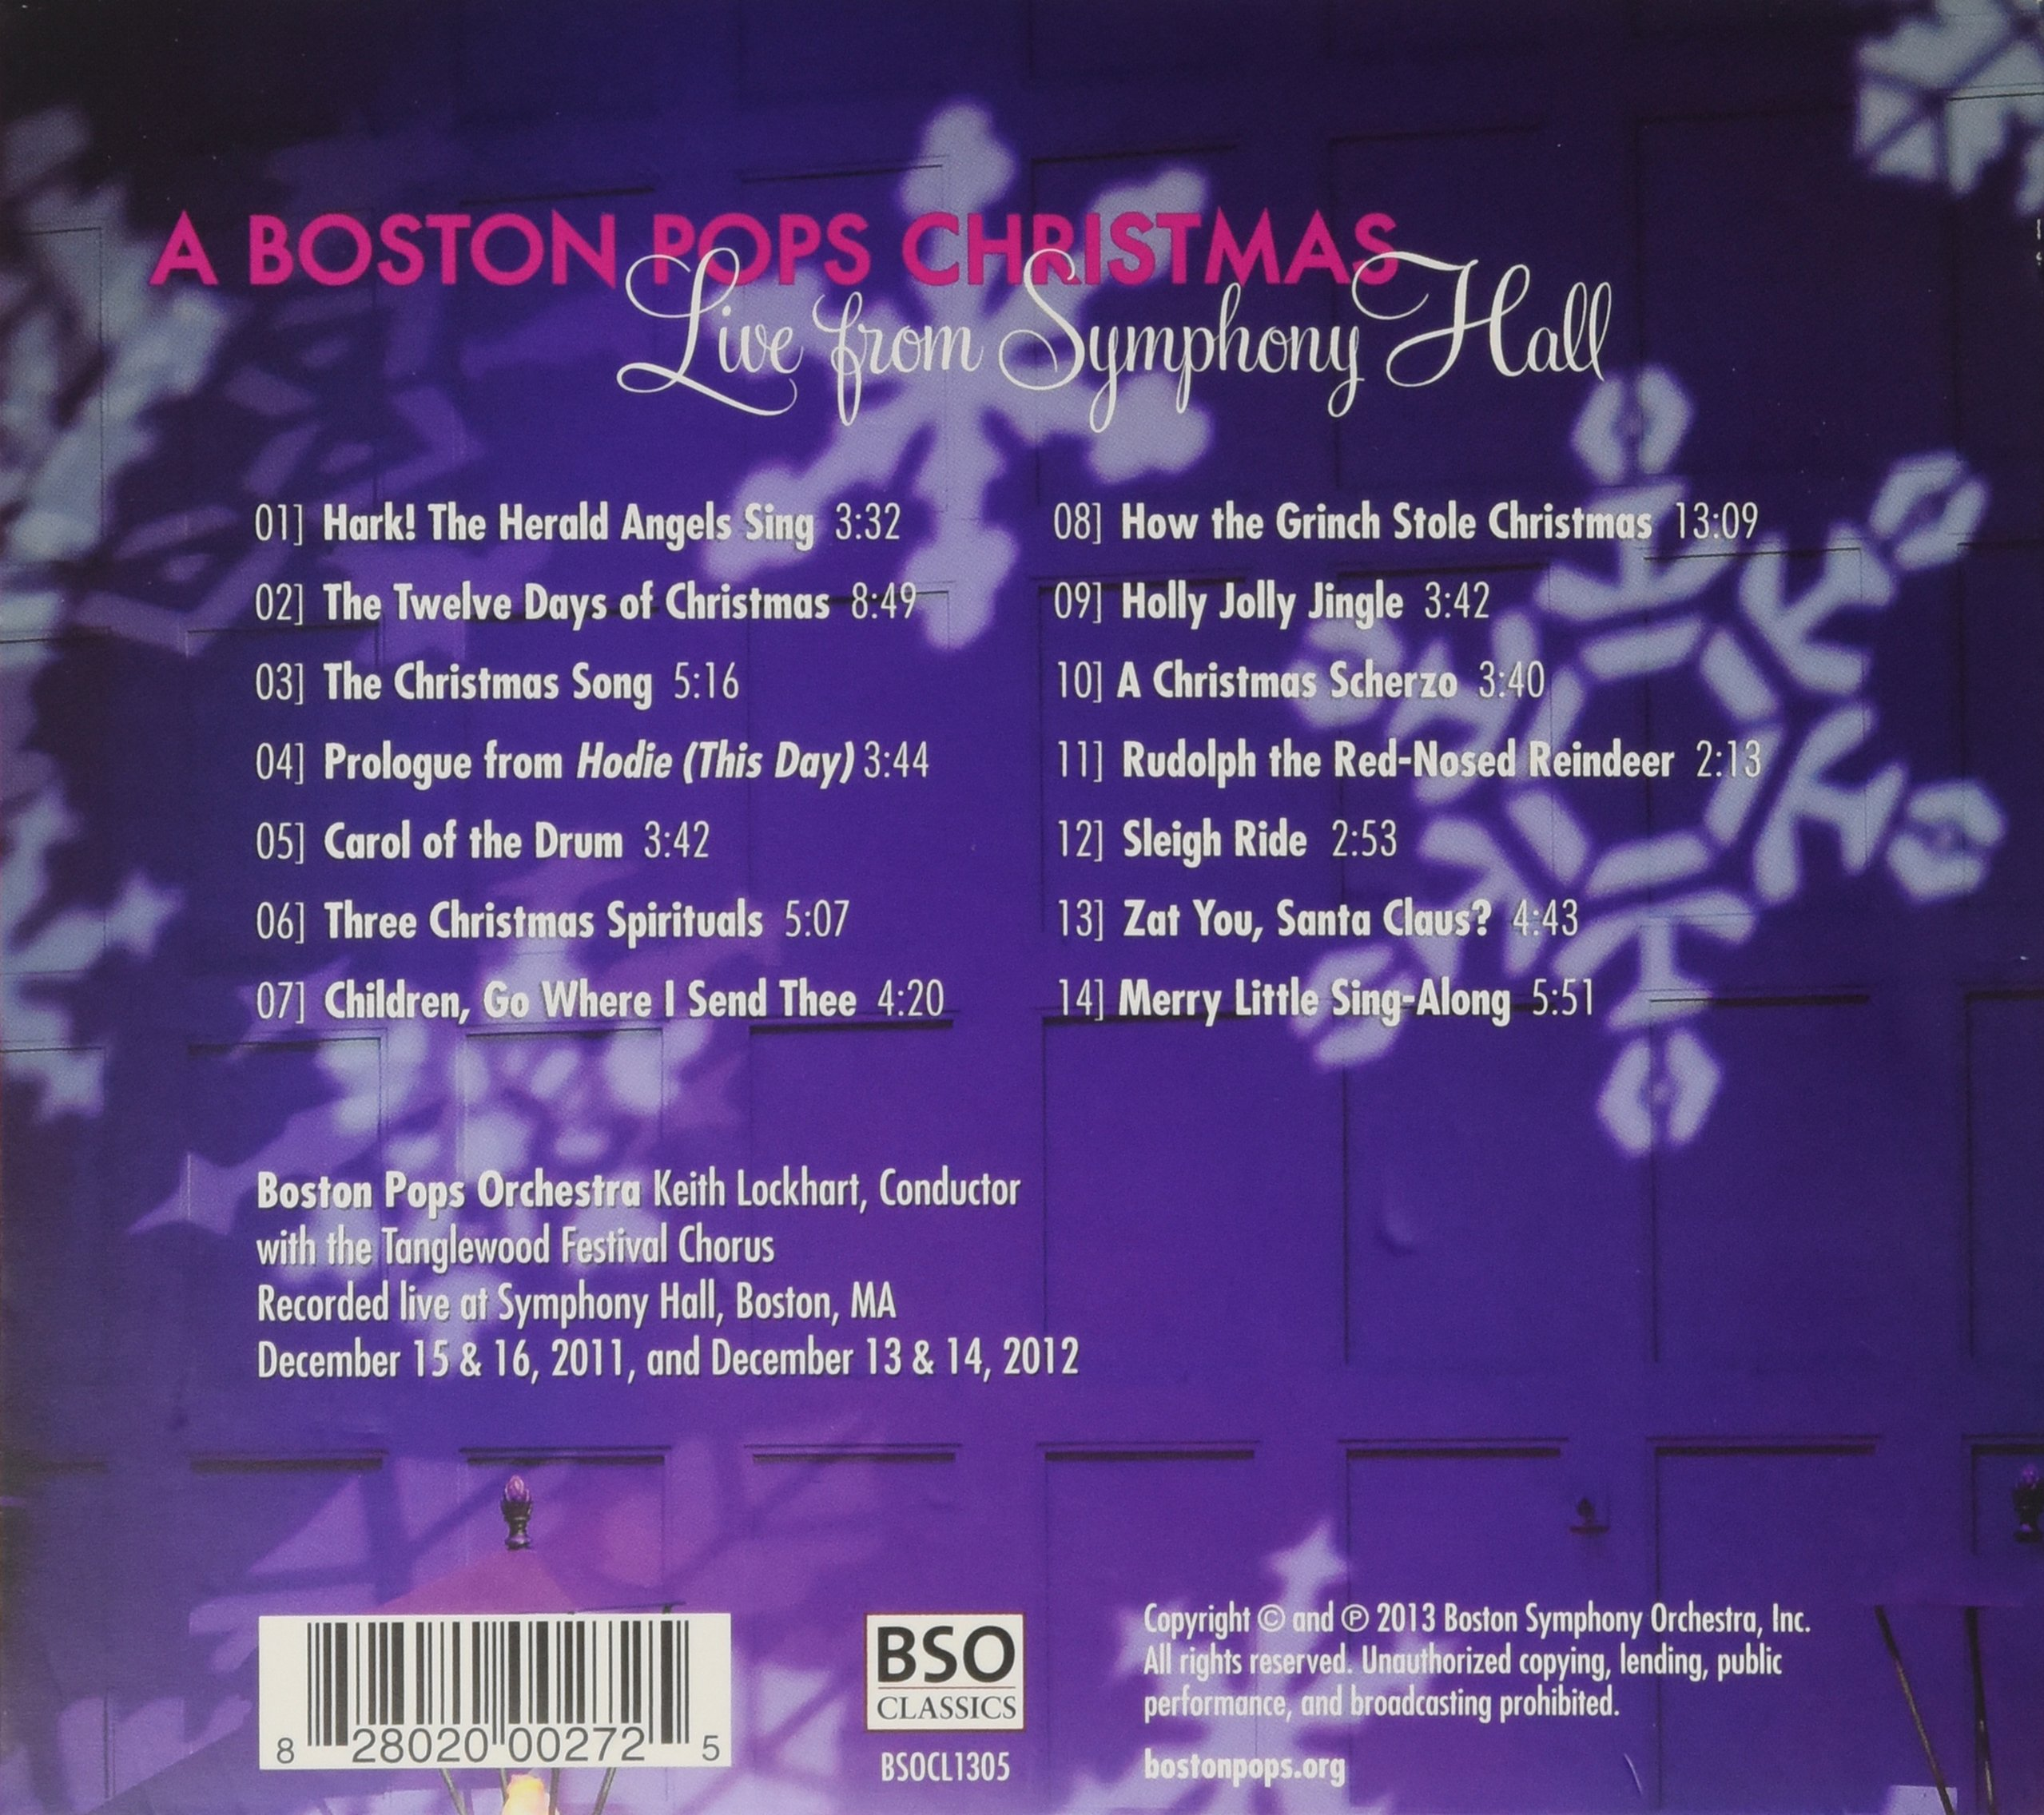 A Boston Pops Christmas: Live From Symphony Hall by BOSTON SYMPHONY ORCHESTRA INC.